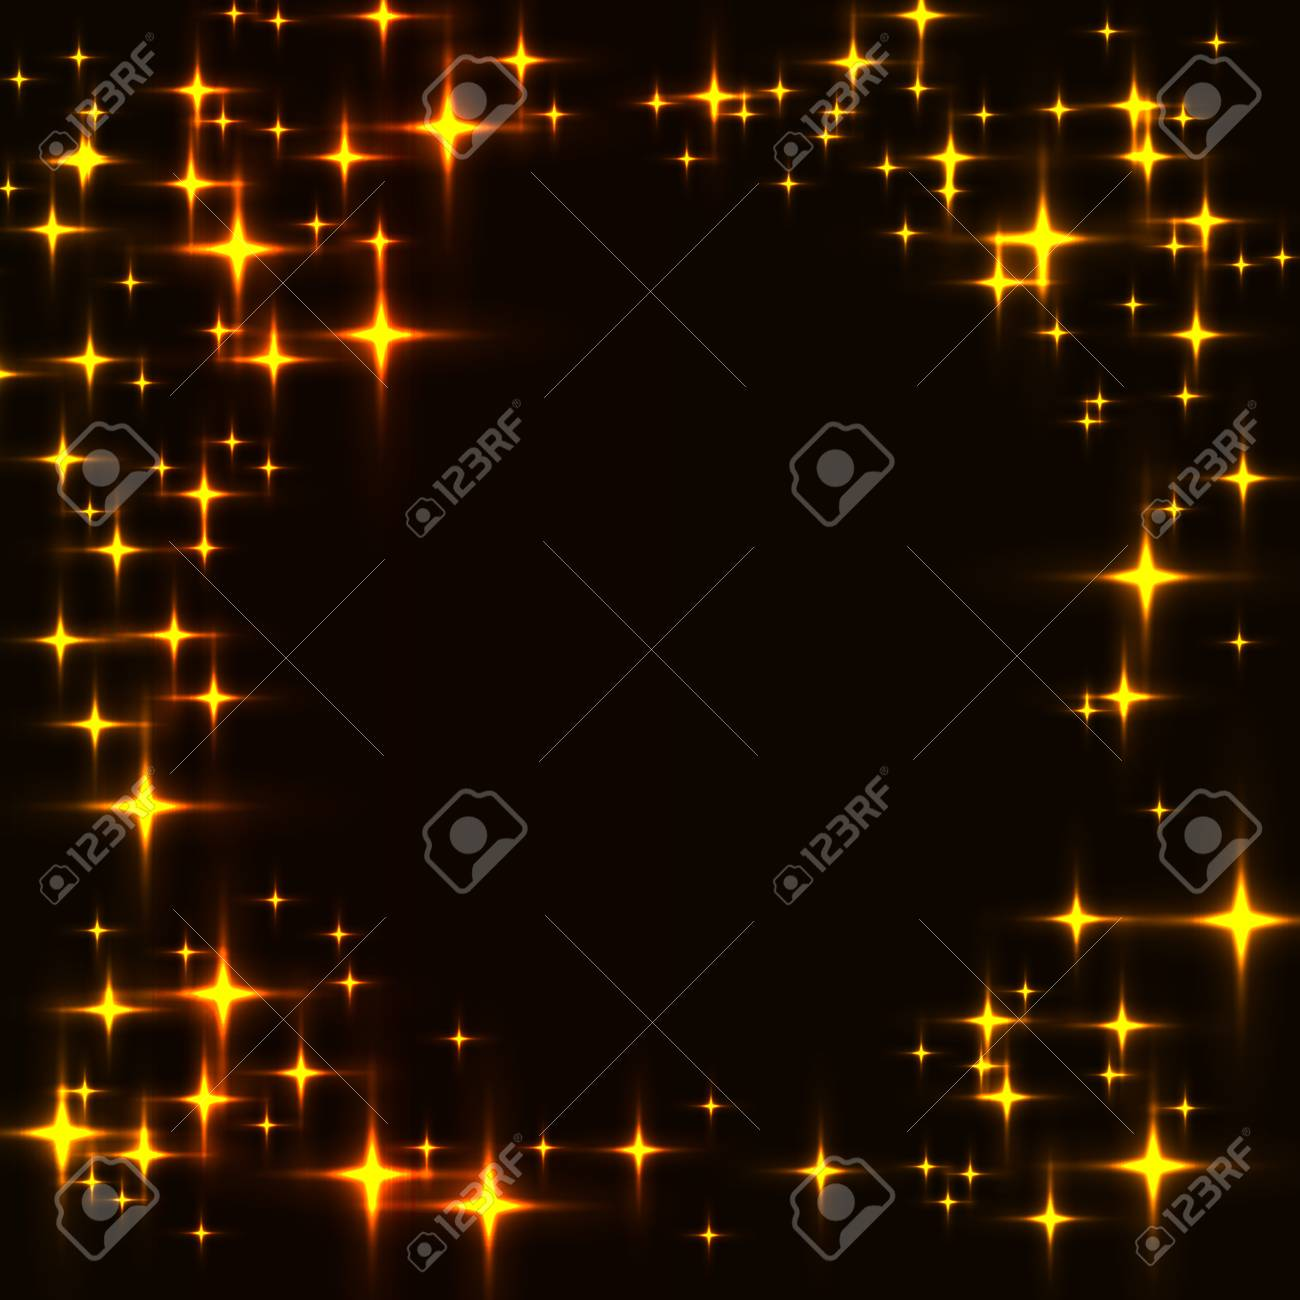 dark template with border made from golden shinning stars black